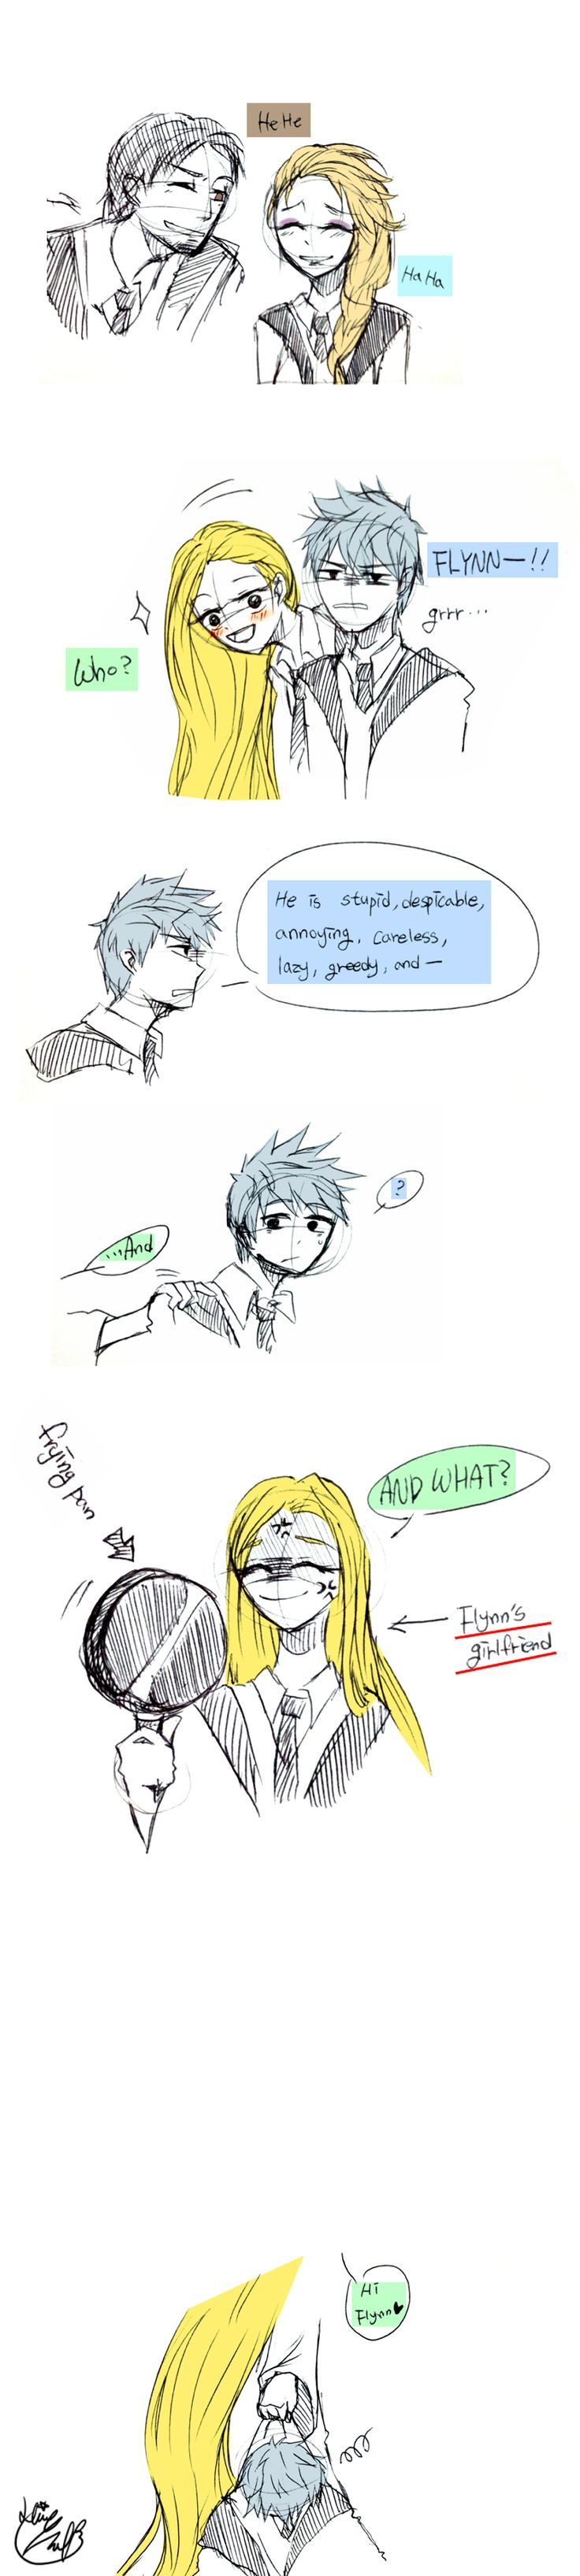 What did you say-? by Lime-Hael.deviantart.com on @deviantART